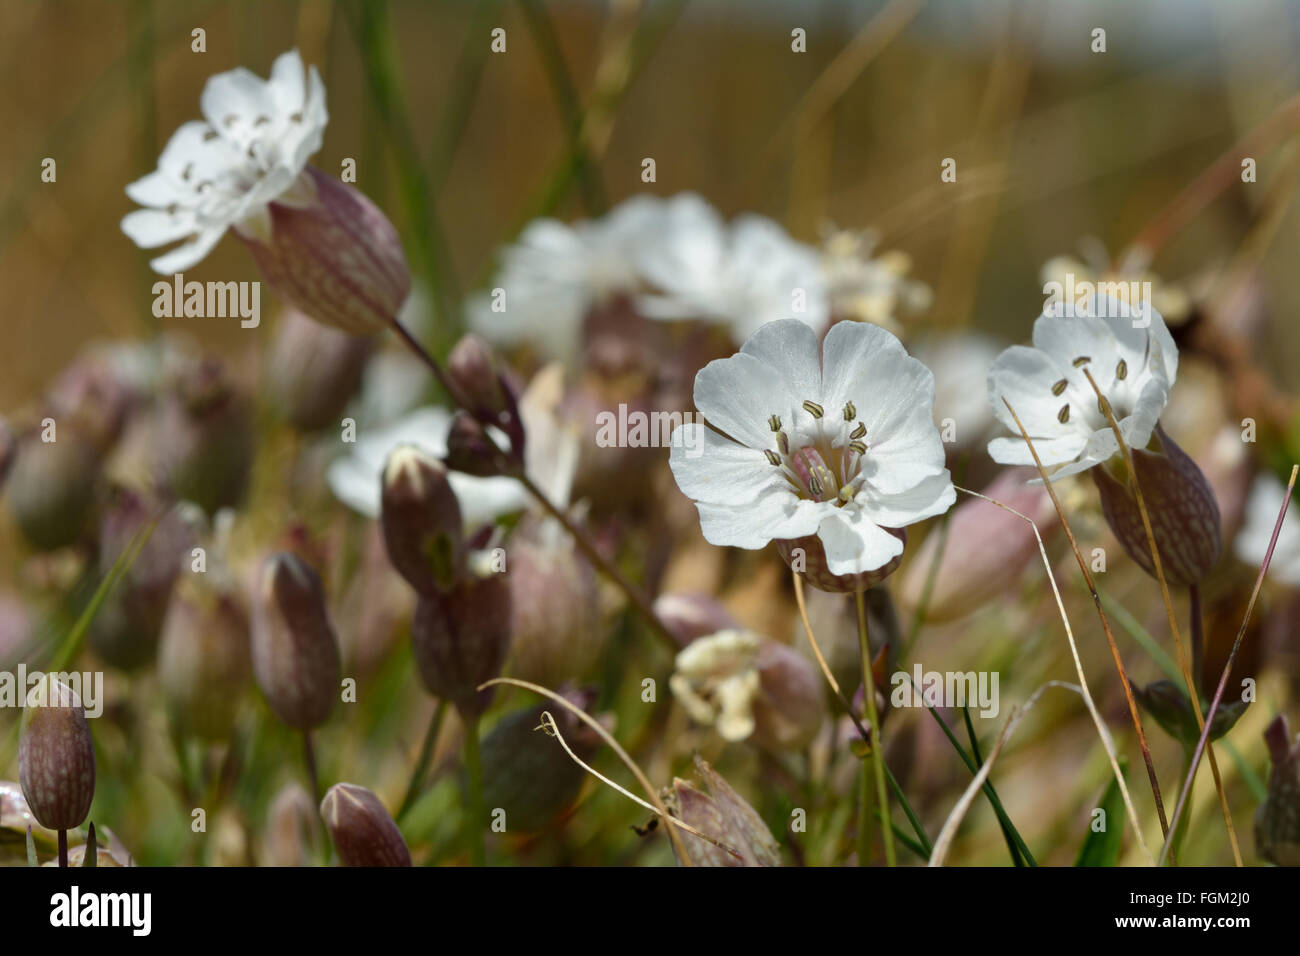 Sea campion (Silene vulgaris) in flower. A delicate flower in the family Caryophyllaceae, seen from a low angle Stock Photo